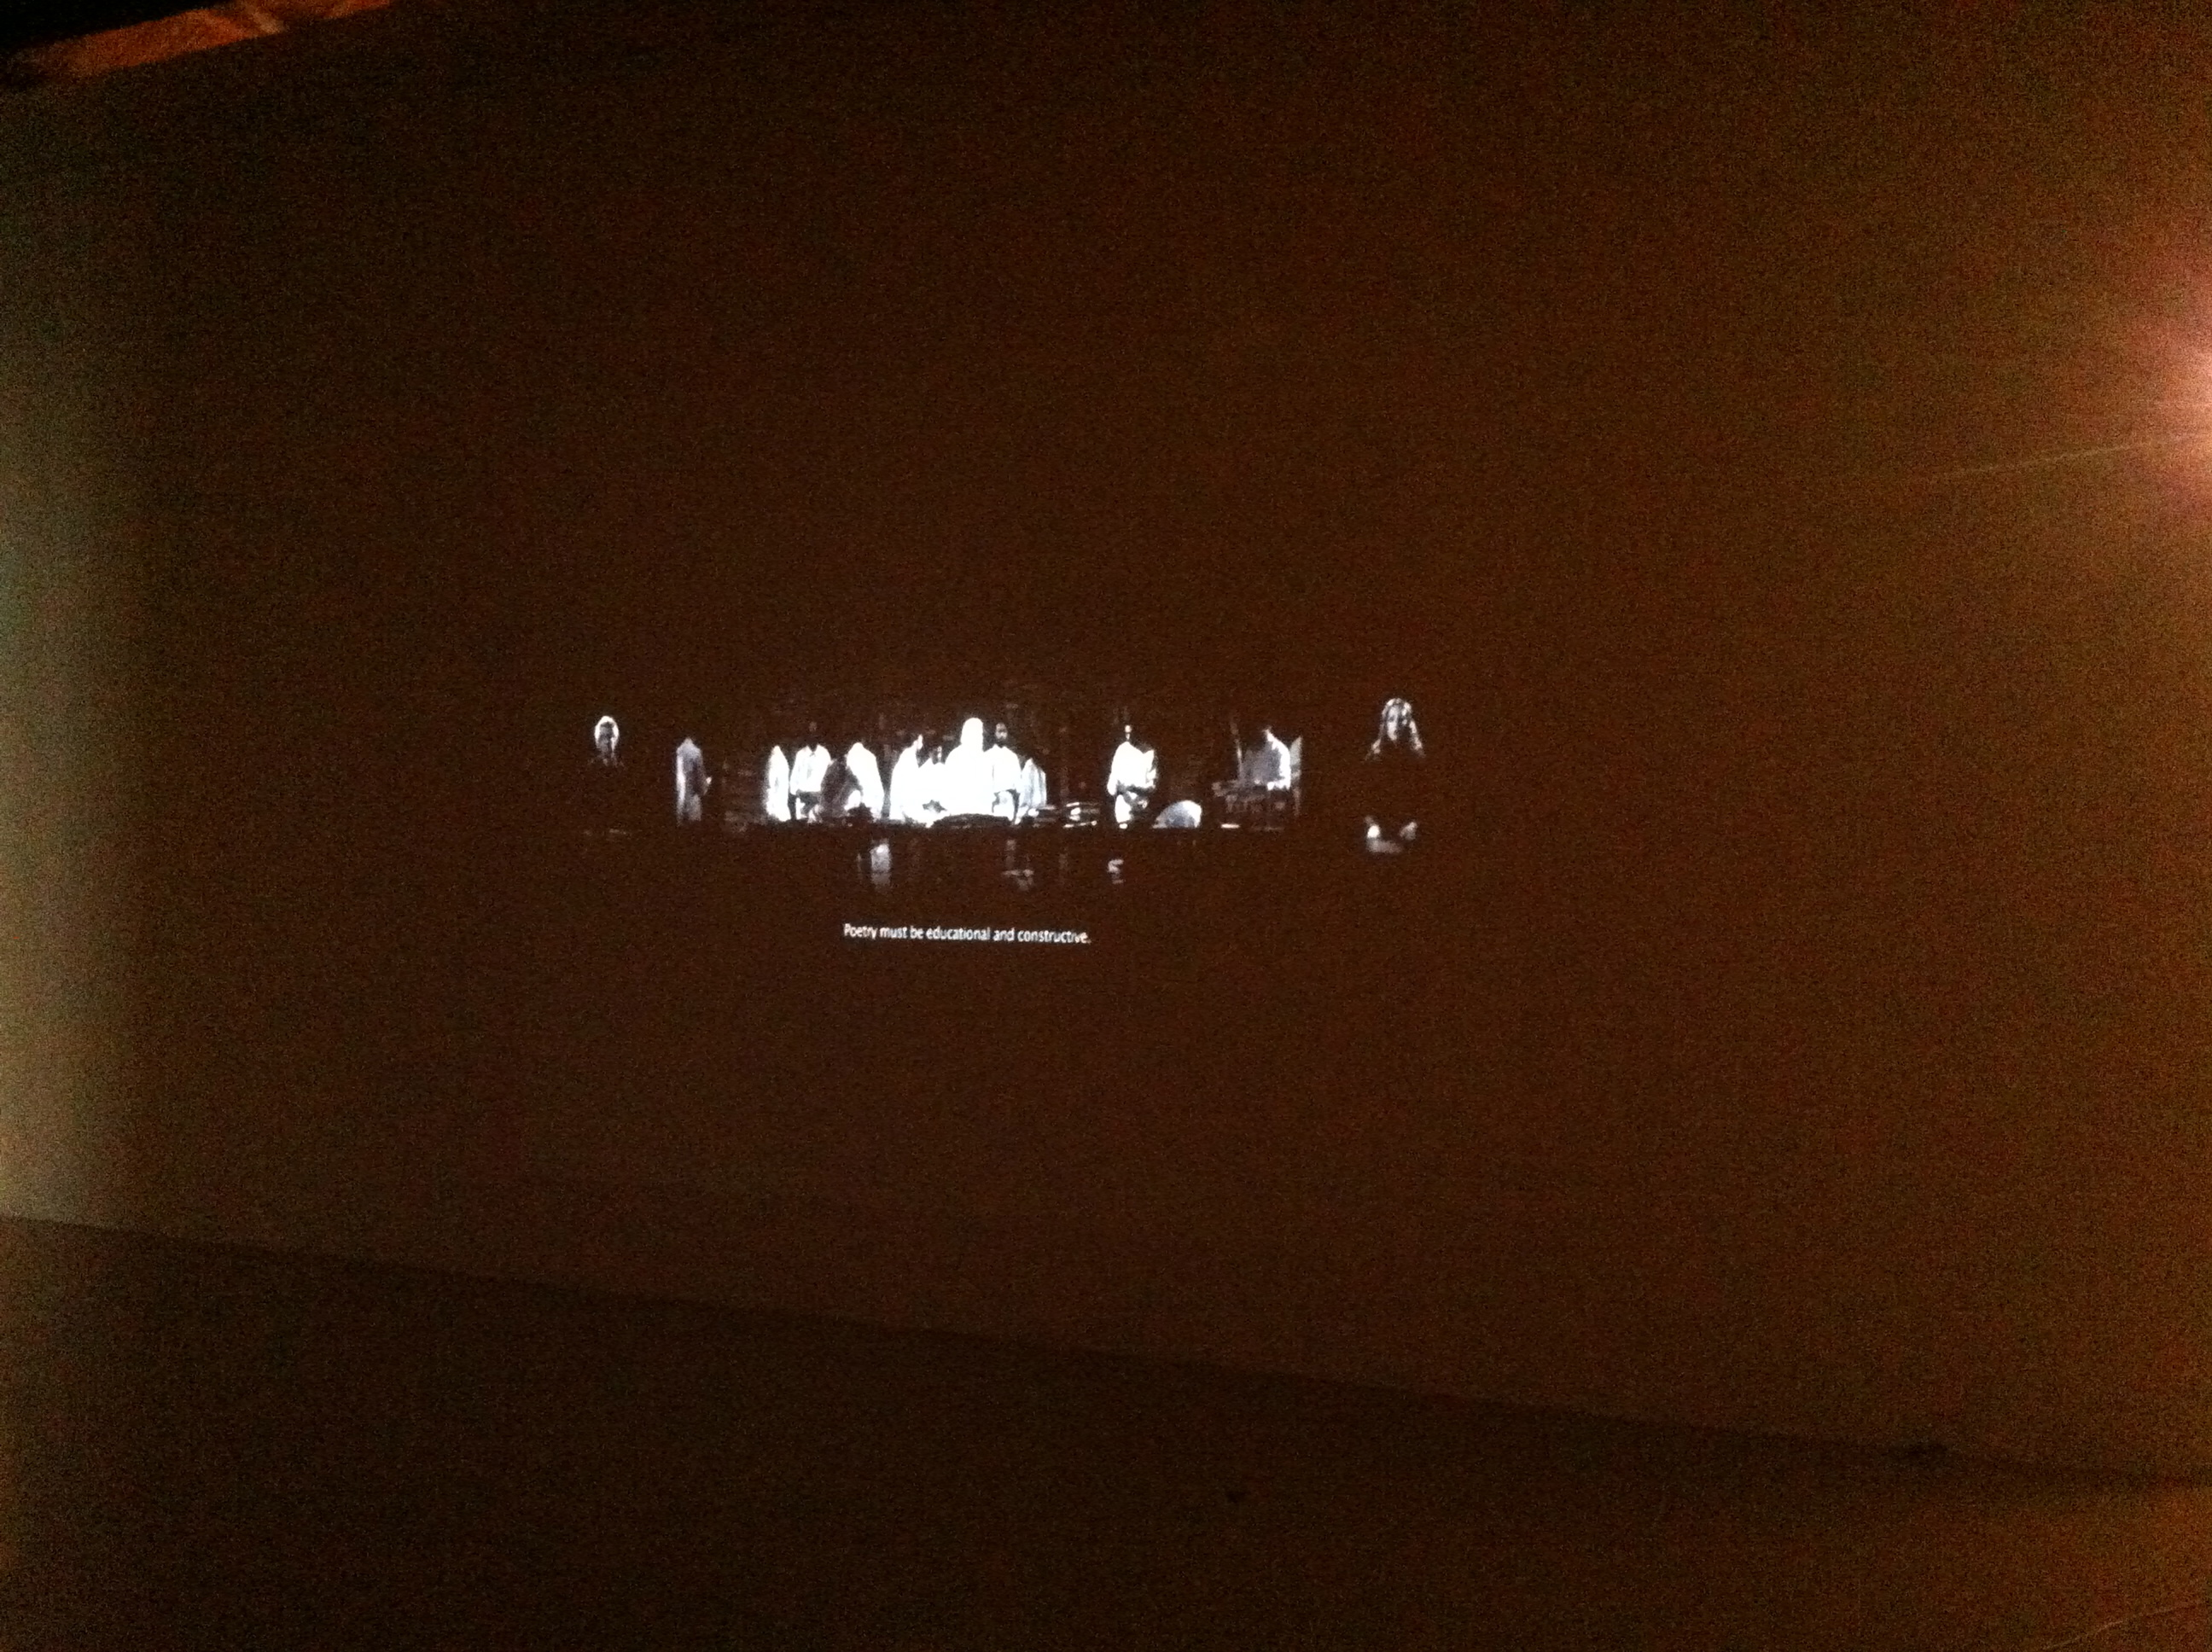 OverRuled, l'ultimo film di Shirin Neshat